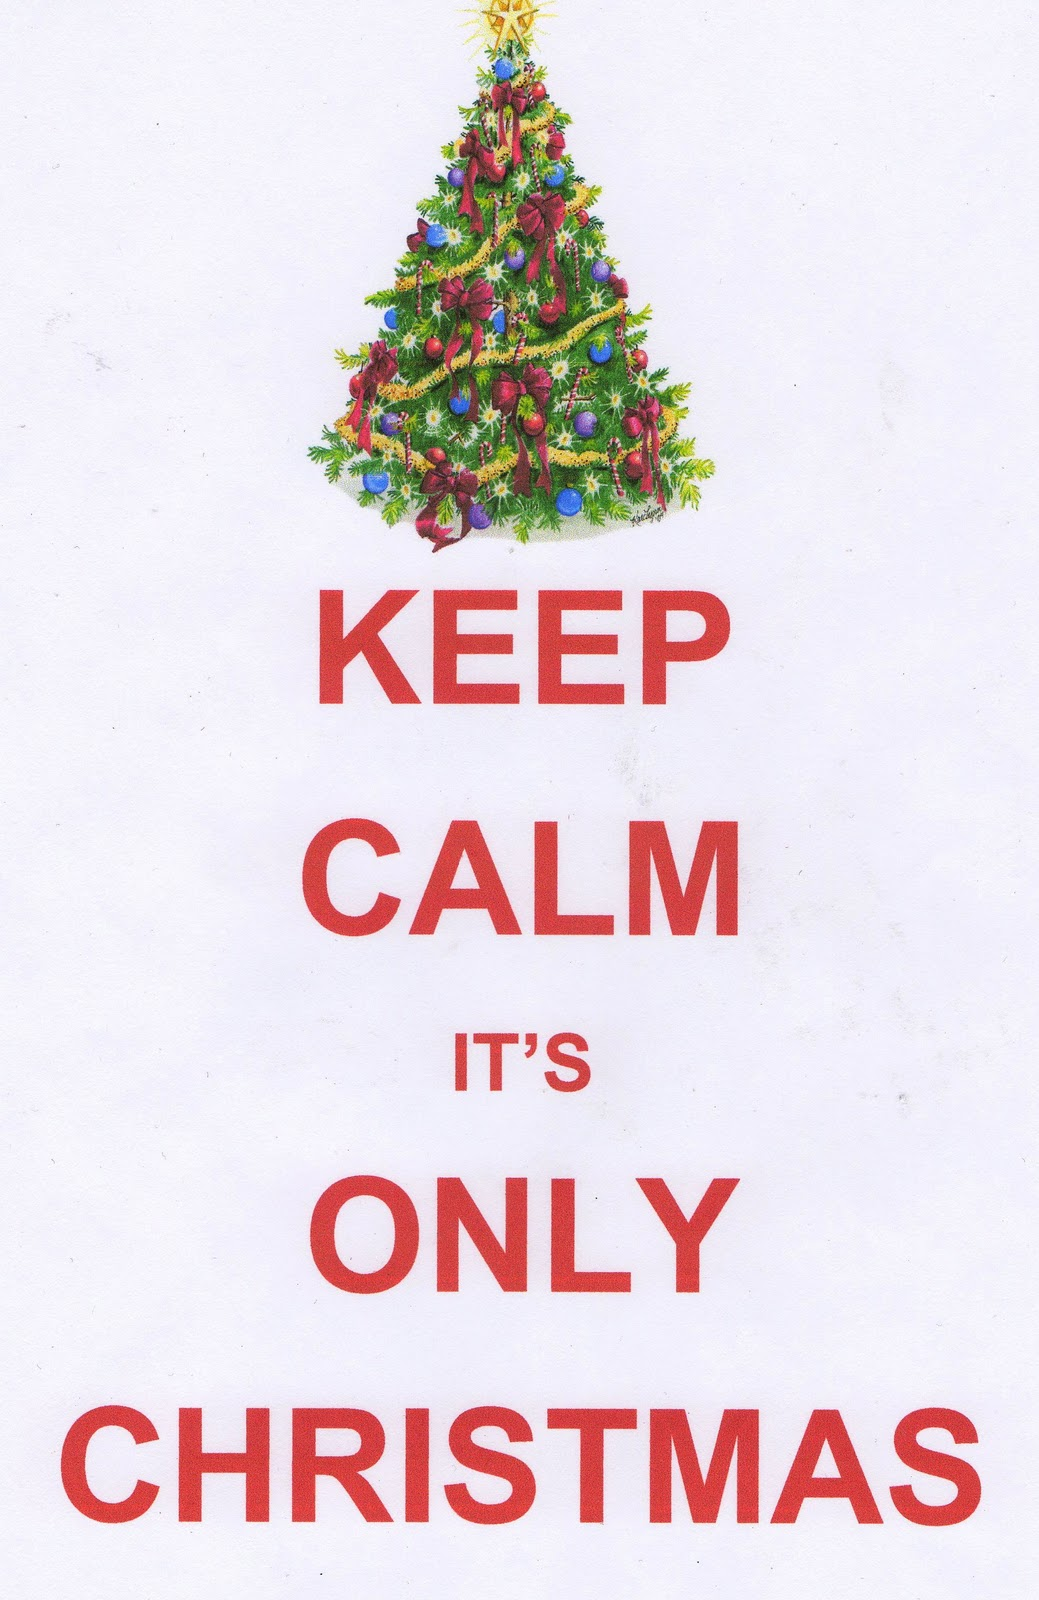 Emmelines blogg: Keep calm its only Christmas